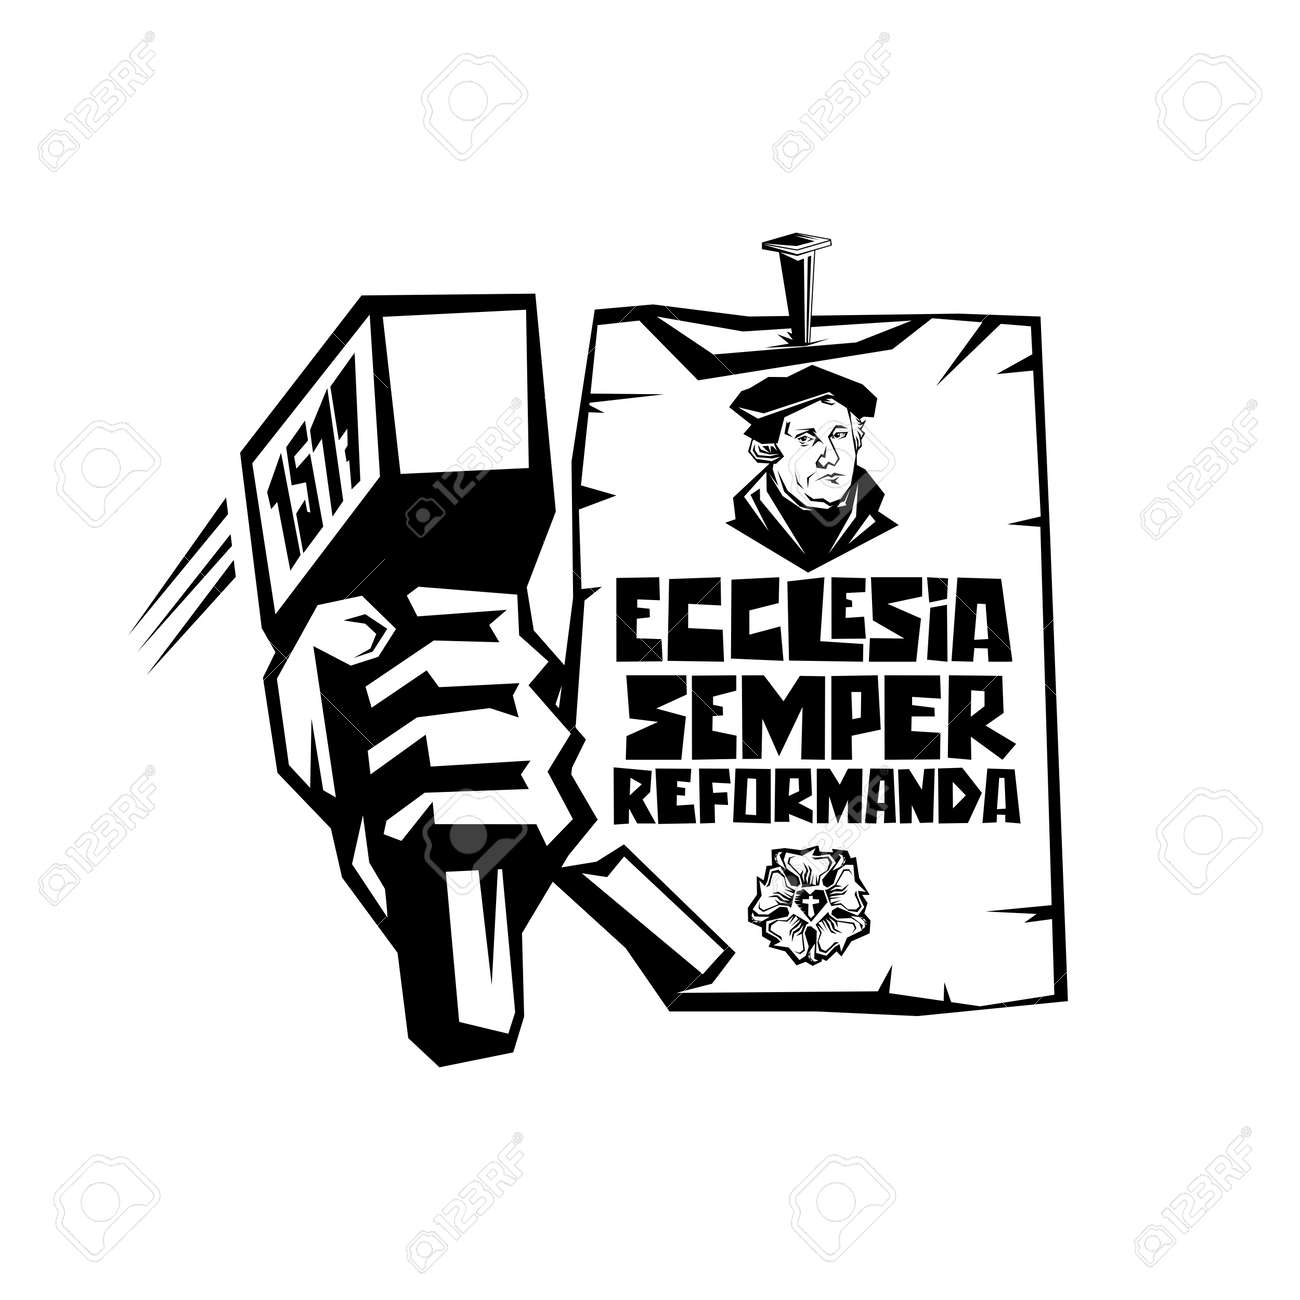 Martin Luther. 95 theses of the reformation of the church. Wittenberg 1517. - 166673466